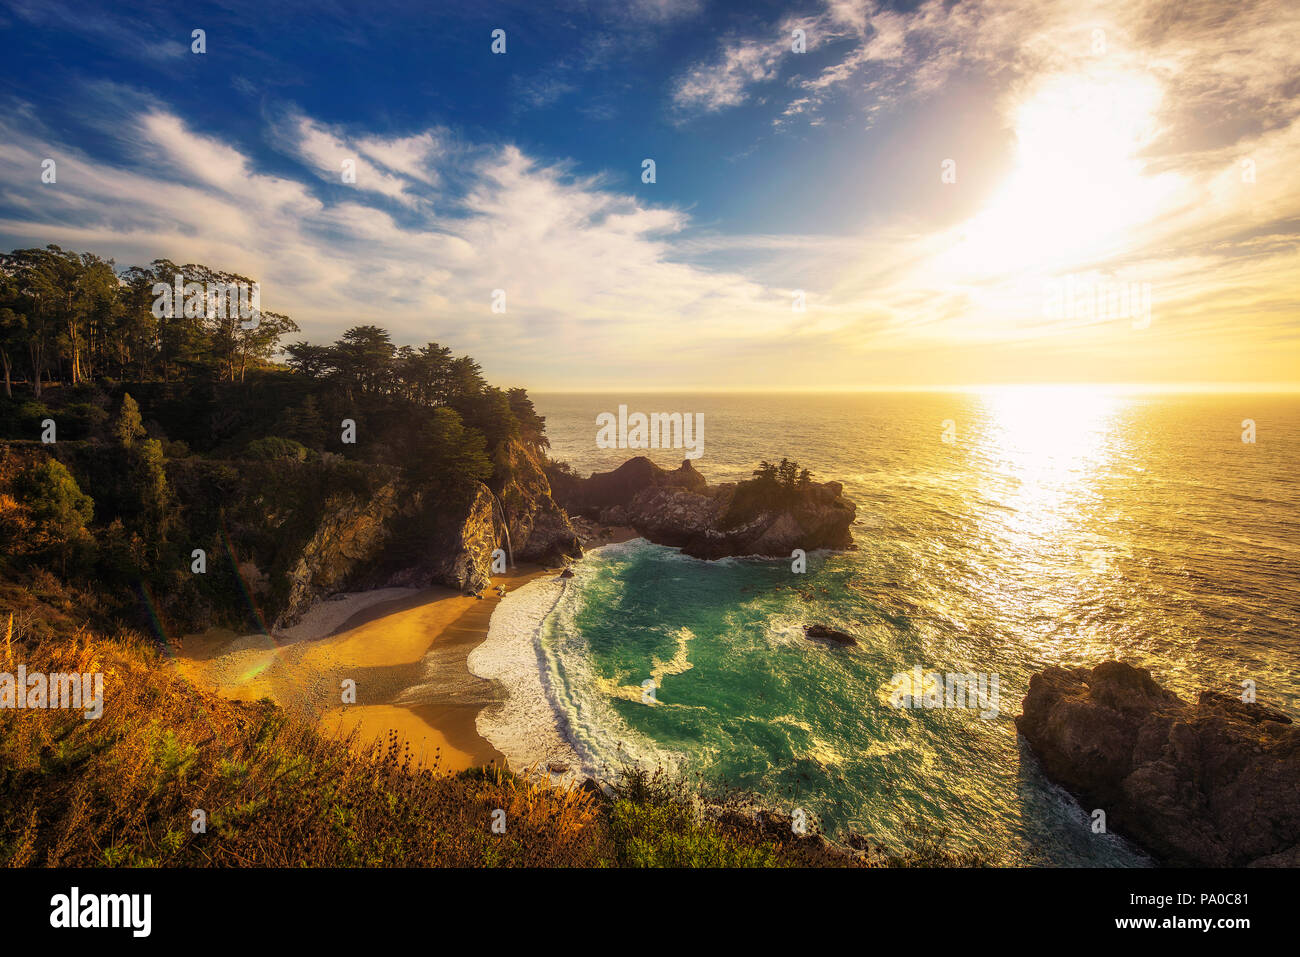 Sunset over McWay Falls on Pacific Coast Highway in California - Stock Image